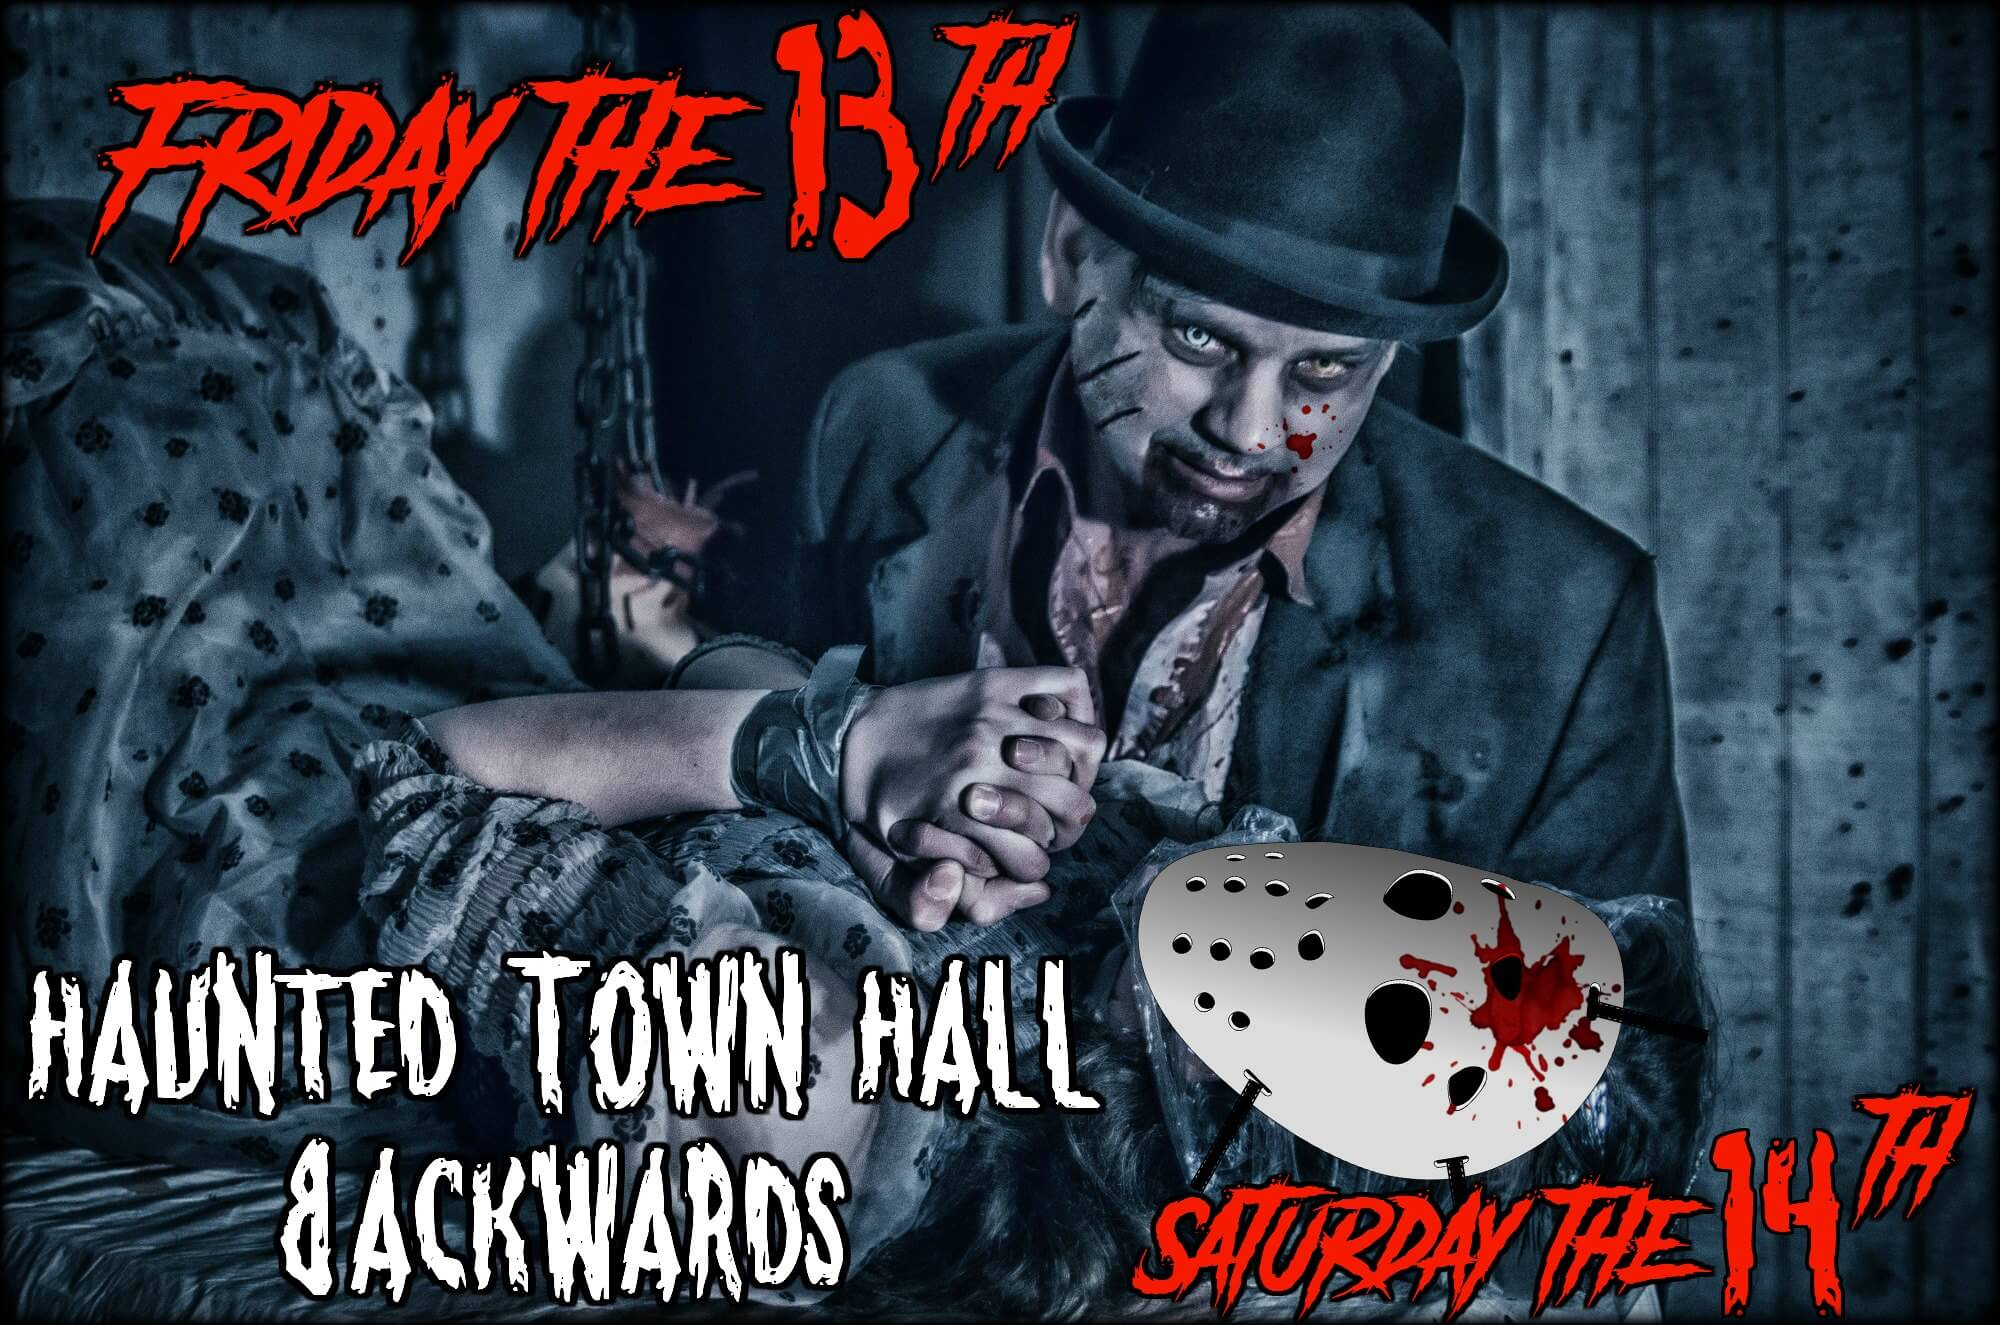 Haunted Town Hall Friday the 13th